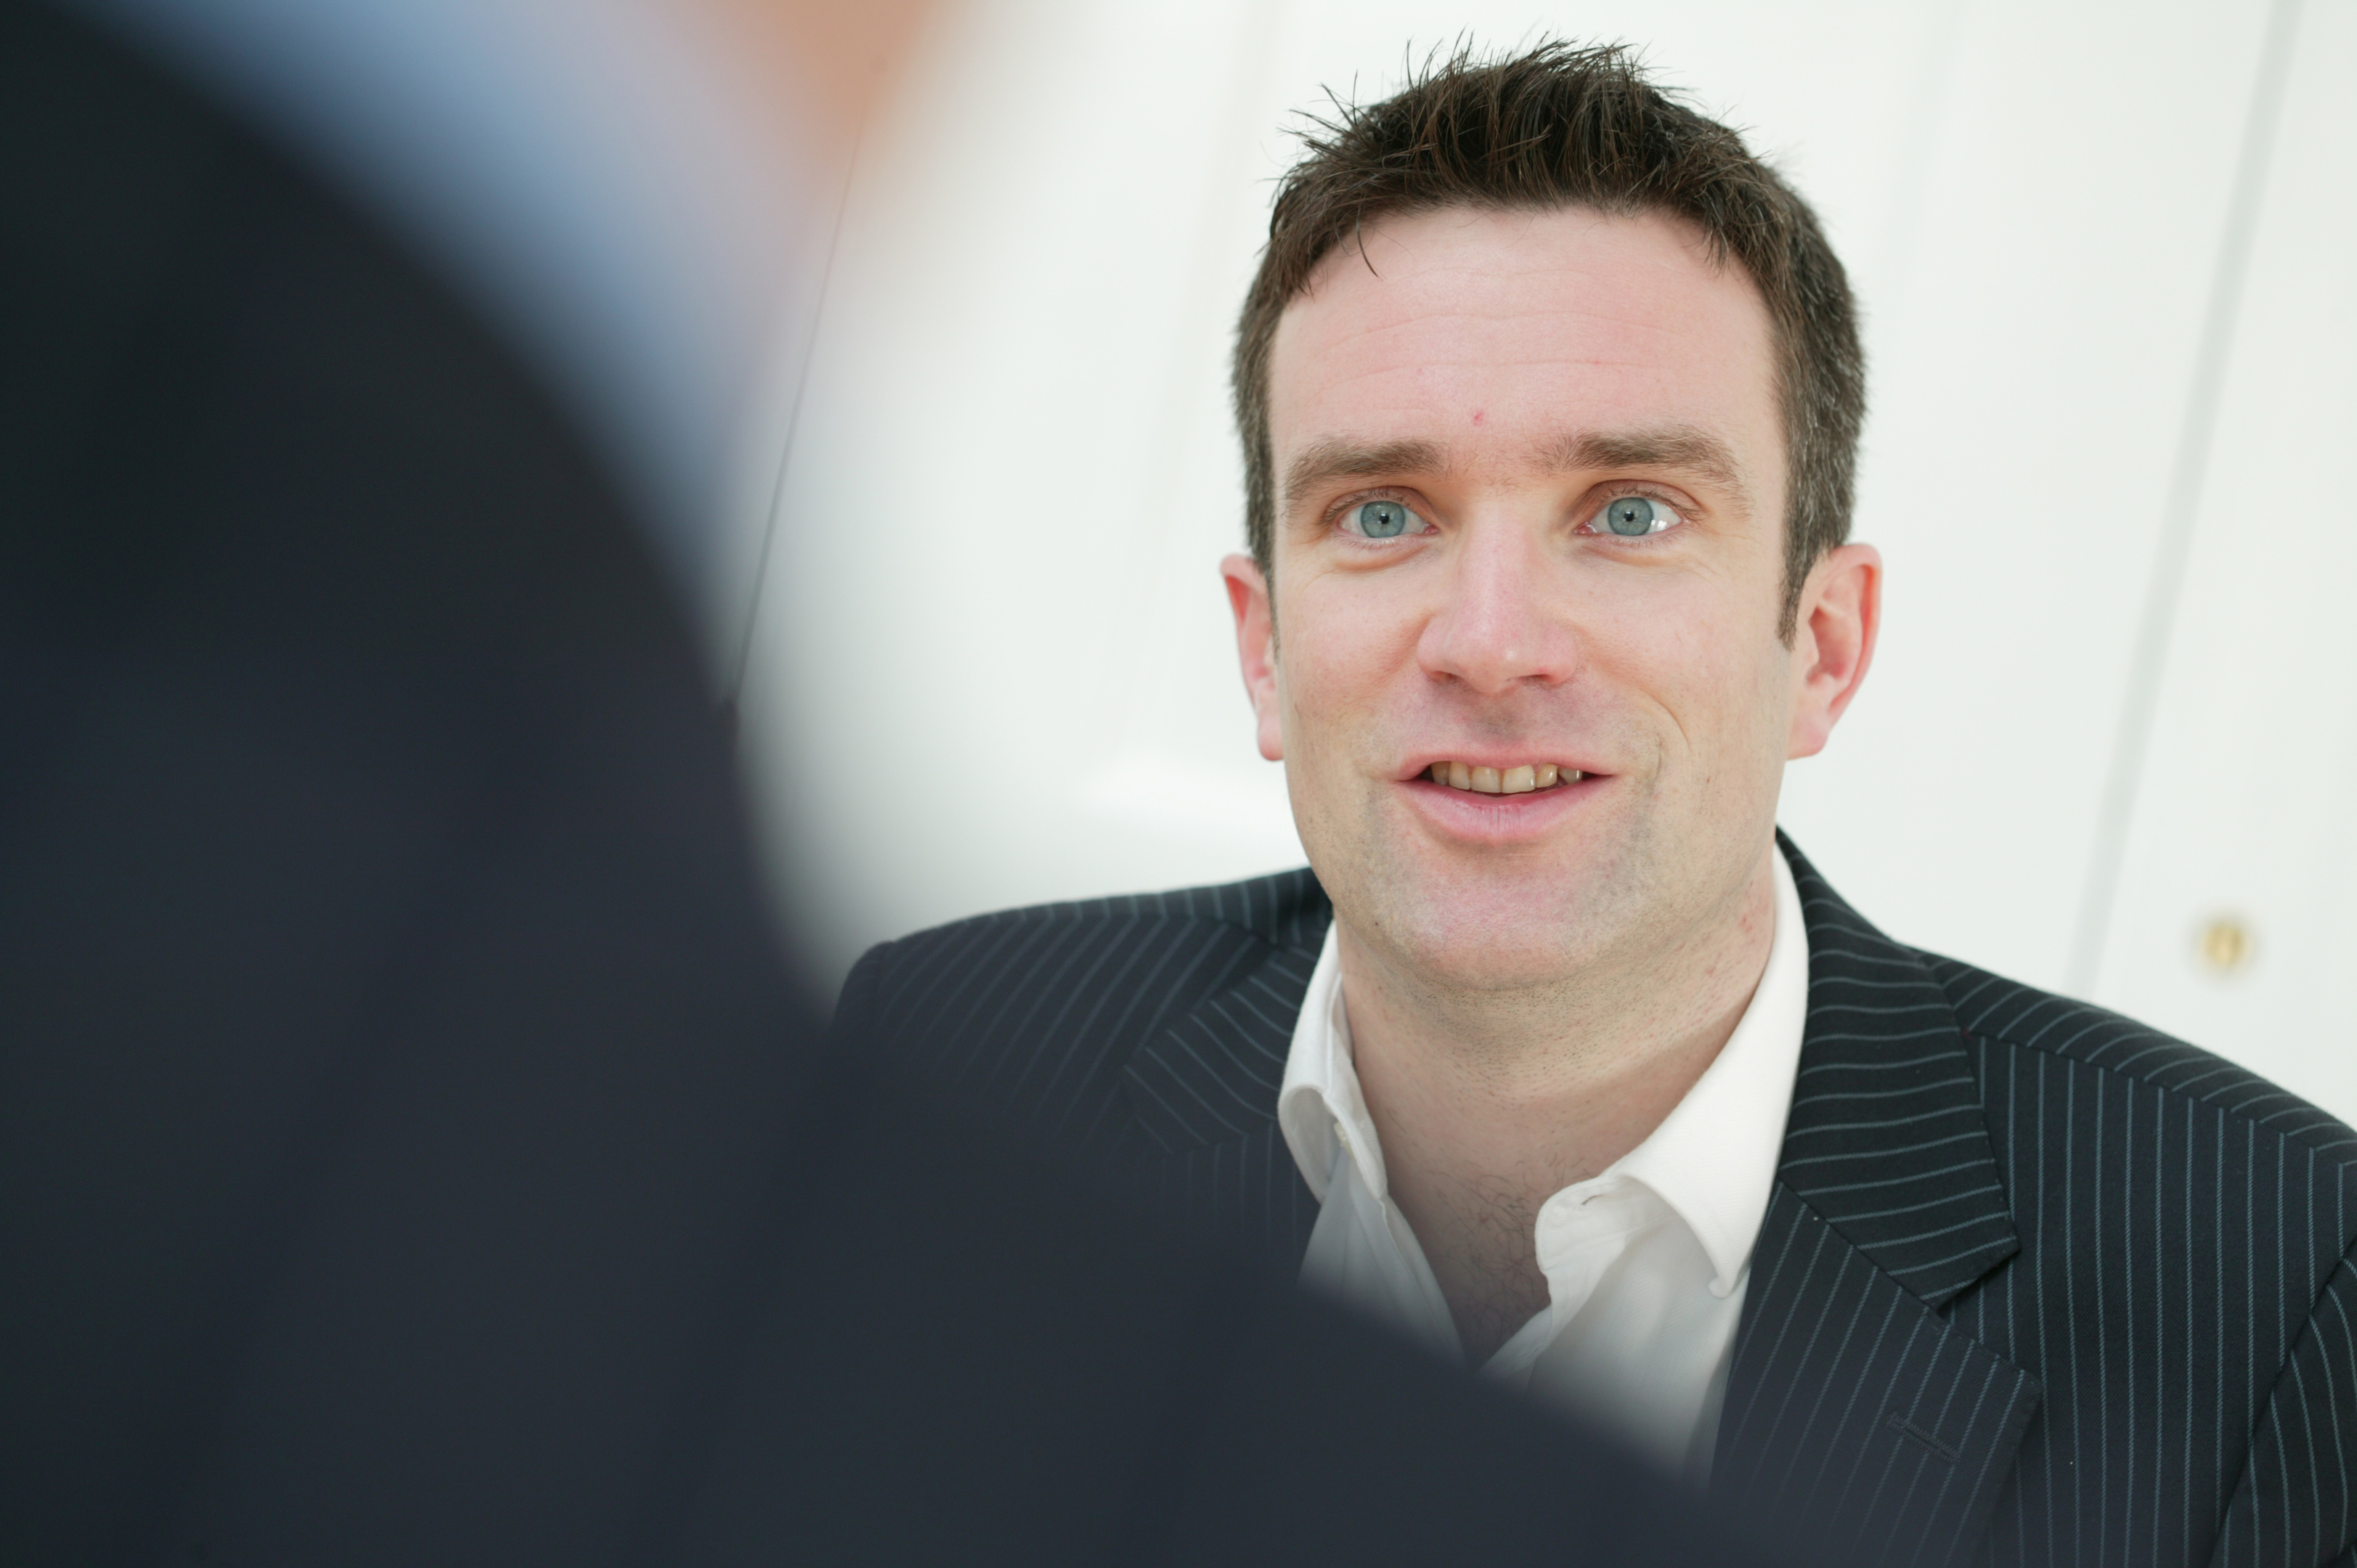 Employment law specialist Tony Hadden has warned that heated debate over independence could cause problems for employers.